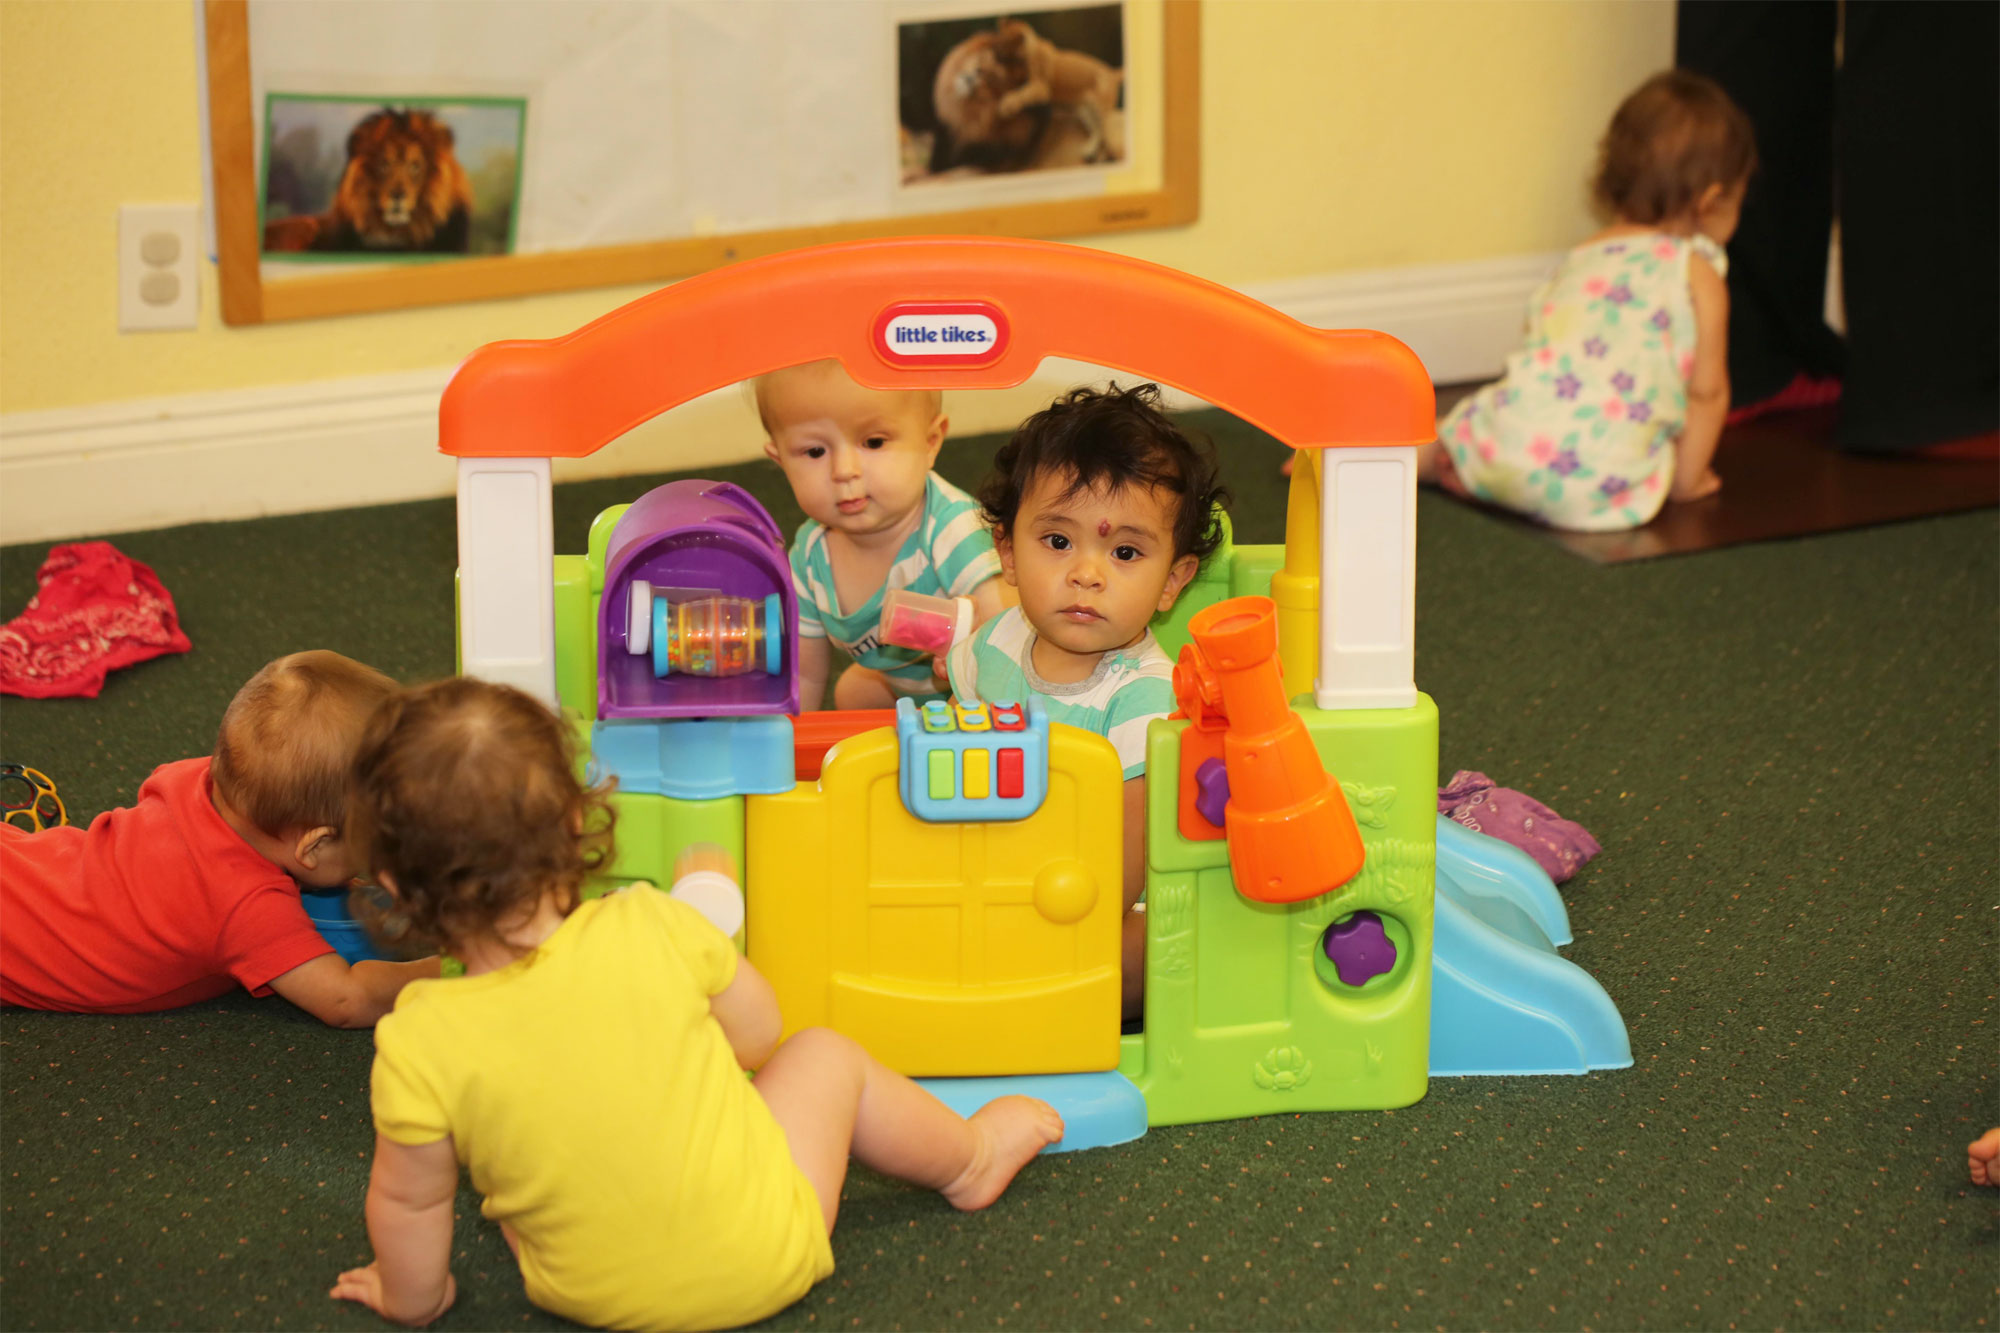 pasadena preschool academy Infant Care